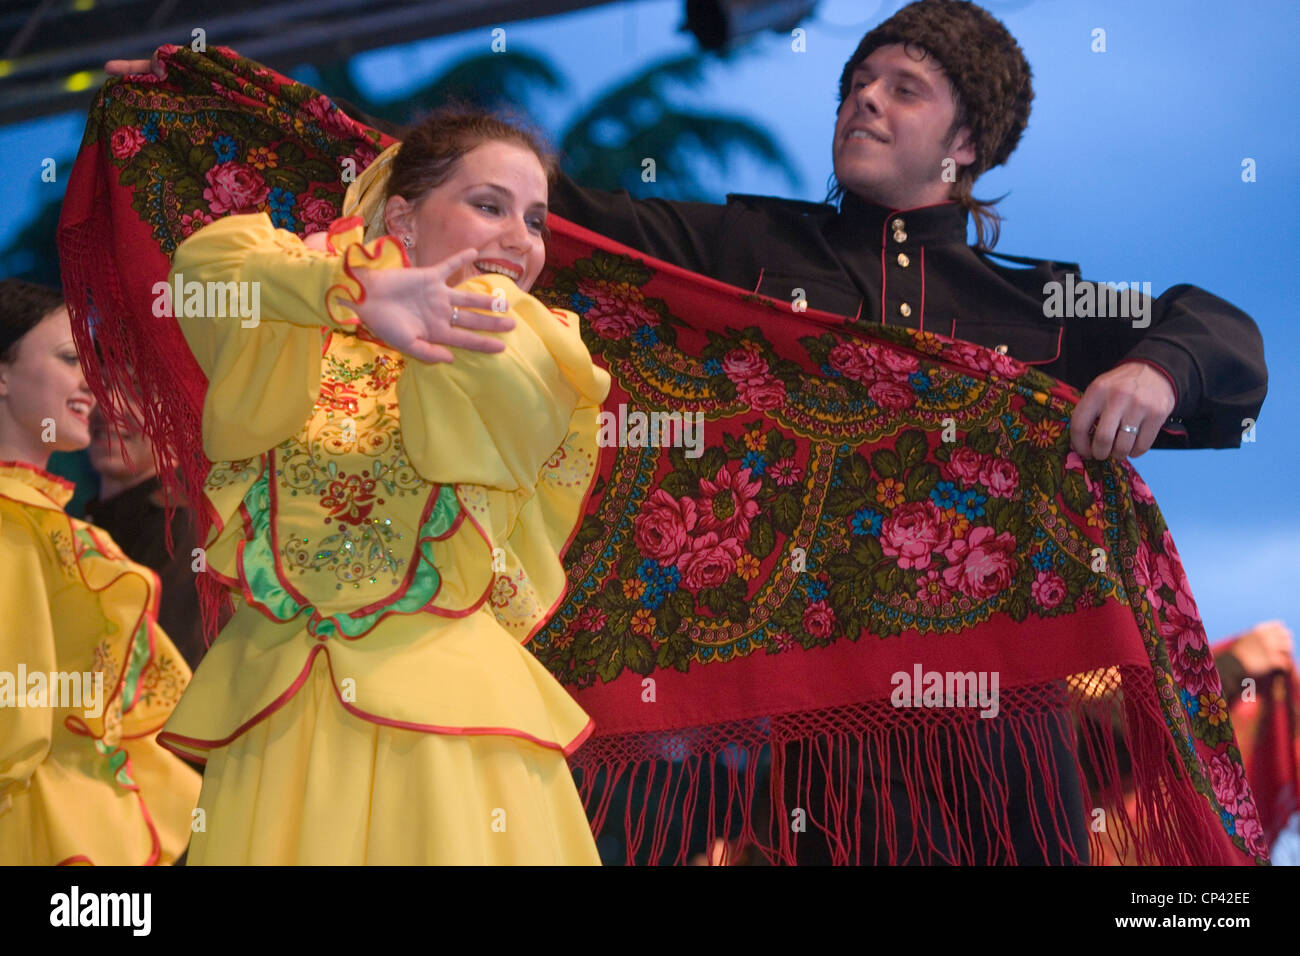 Bulgaria - Veliko T? Rnovo. International Folklore Festival. Russians in traditional costume performing a dance - Stock Image